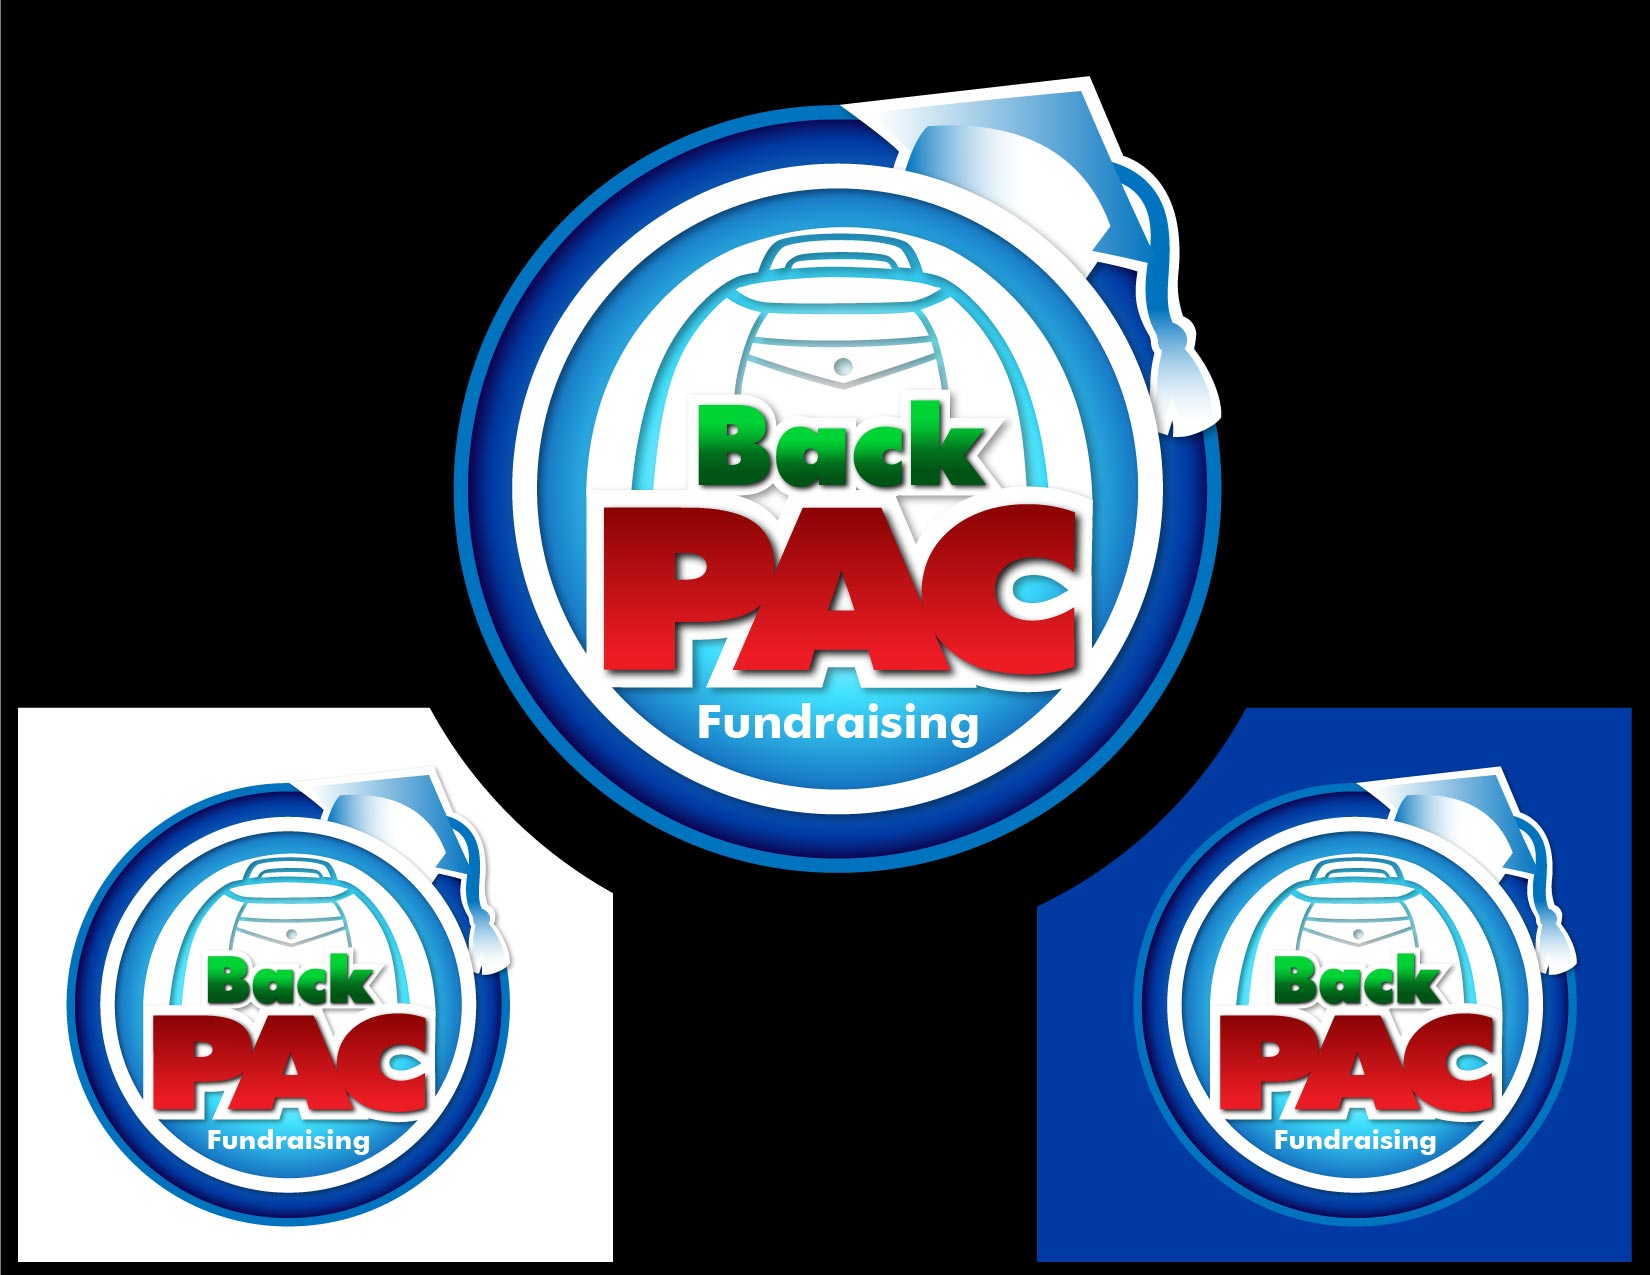 Logo Design by Emil Angelo Osias - Entry No. 92 in the Logo Design Contest Imaginative Logo Design for BackPAC Fundraising.